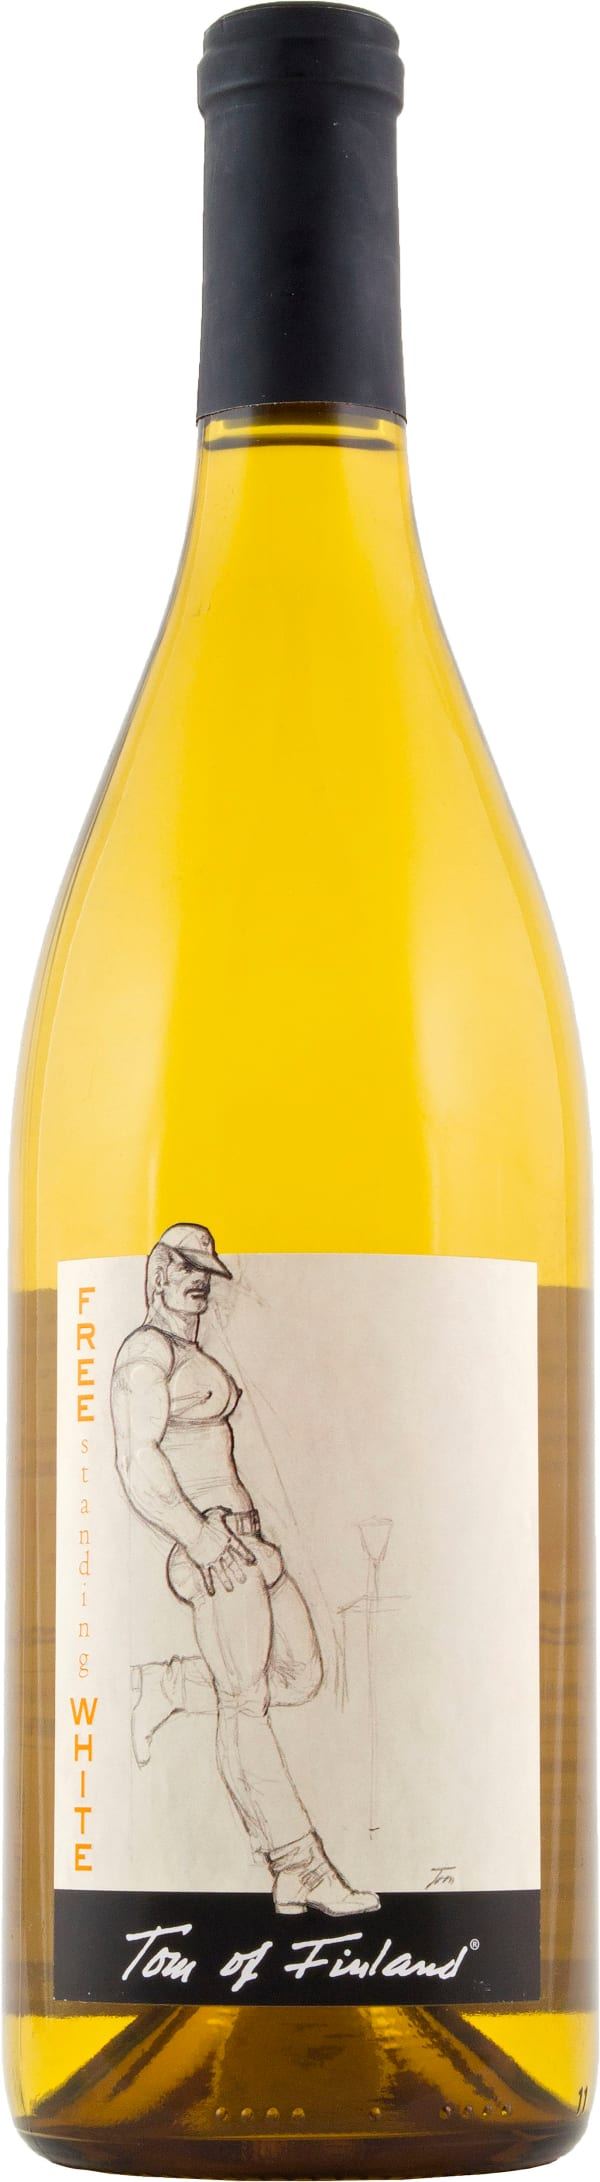 Tom of Finland Free Standing White Chardonnay 2018